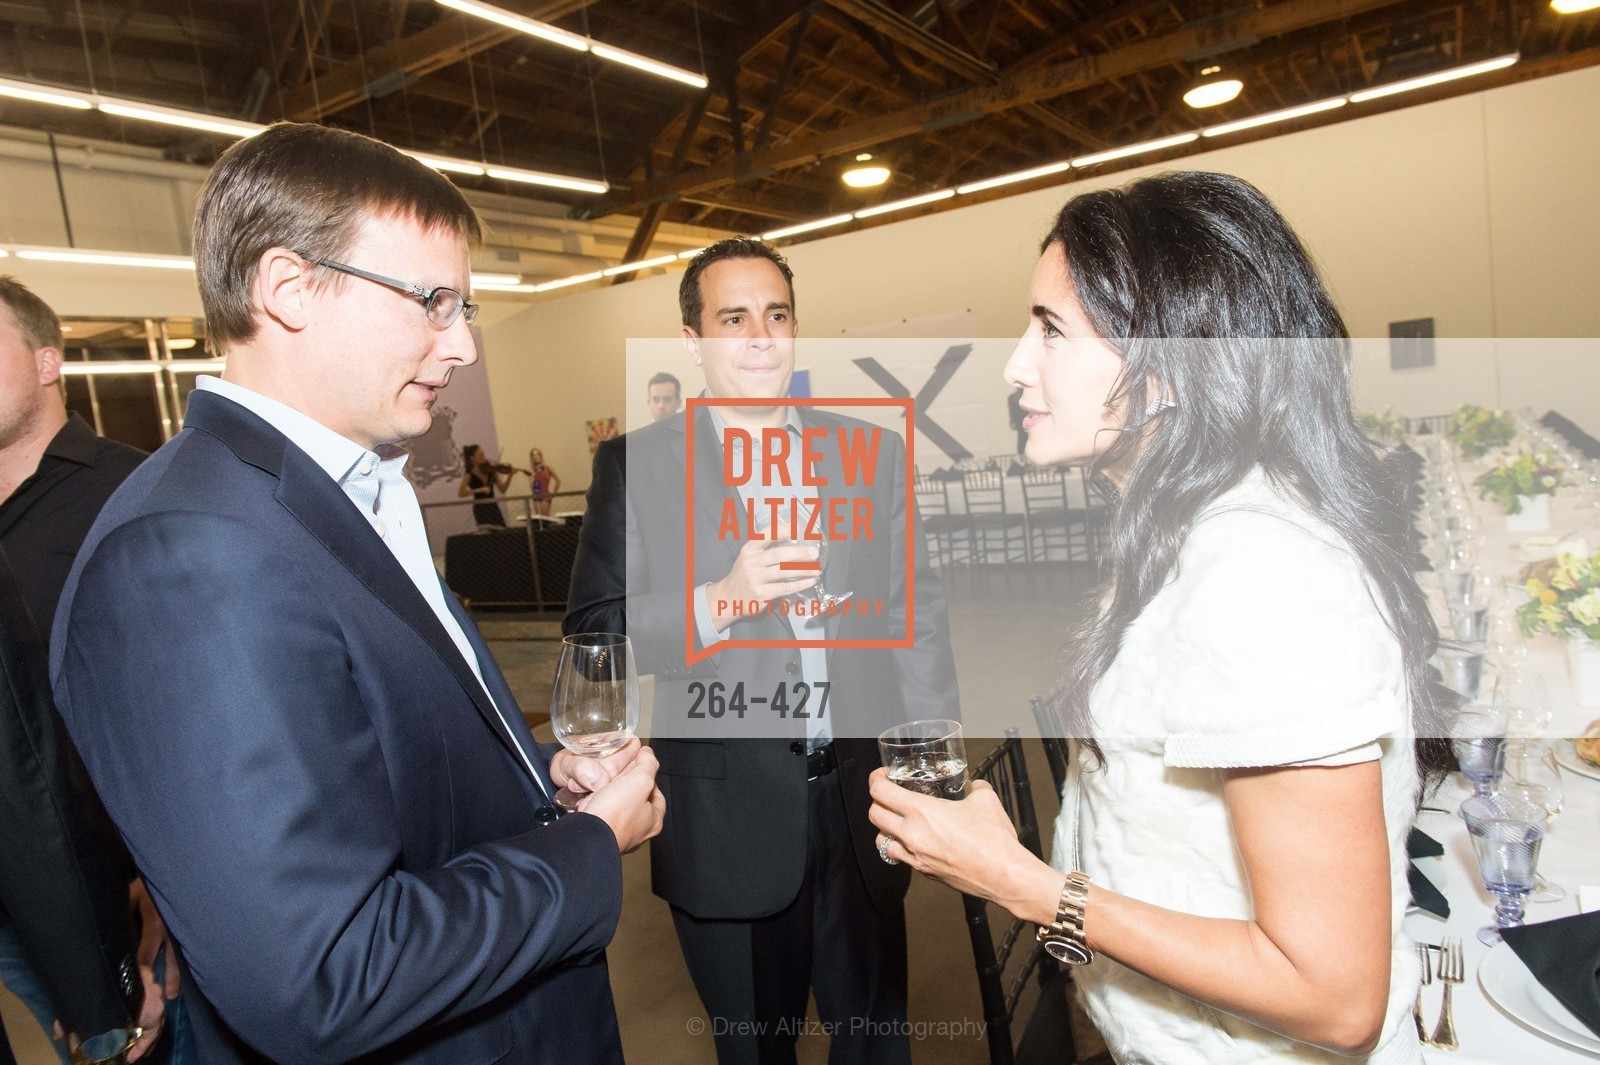 John Macmahon, Matt Danzeisen, Aileen Agopian, Artsy and Sotheby's Dinner at Fused, Fused, October 29th, 2015,Drew Altizer, Drew Altizer Photography, full-service agency, private events, San Francisco photographer, photographer california